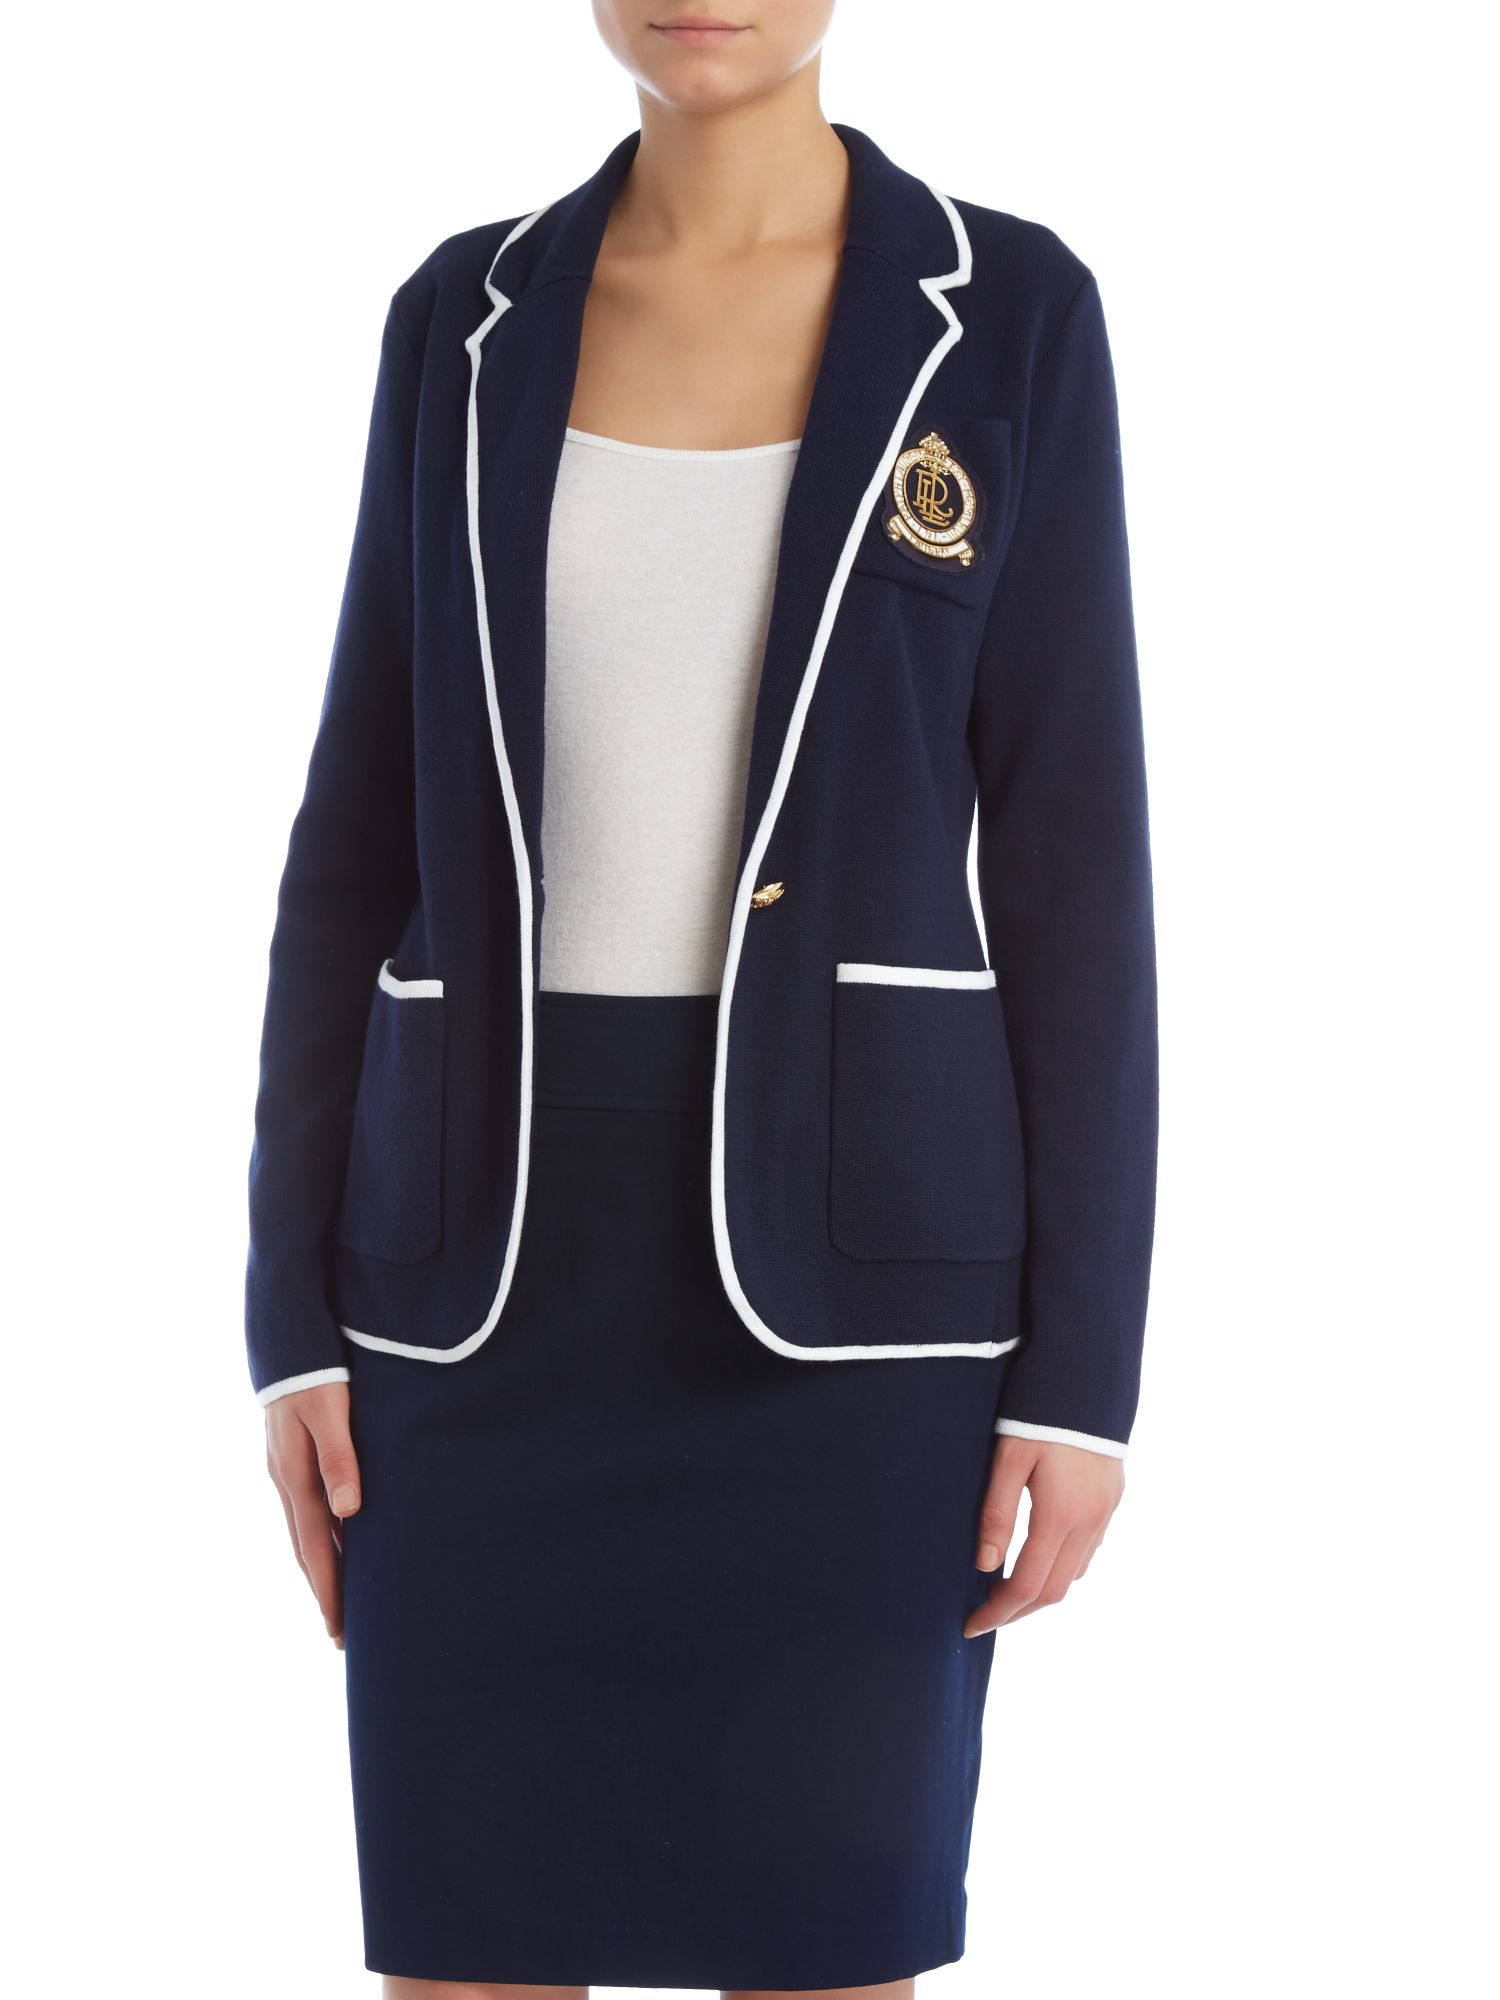 Long sleeve blazer with crest